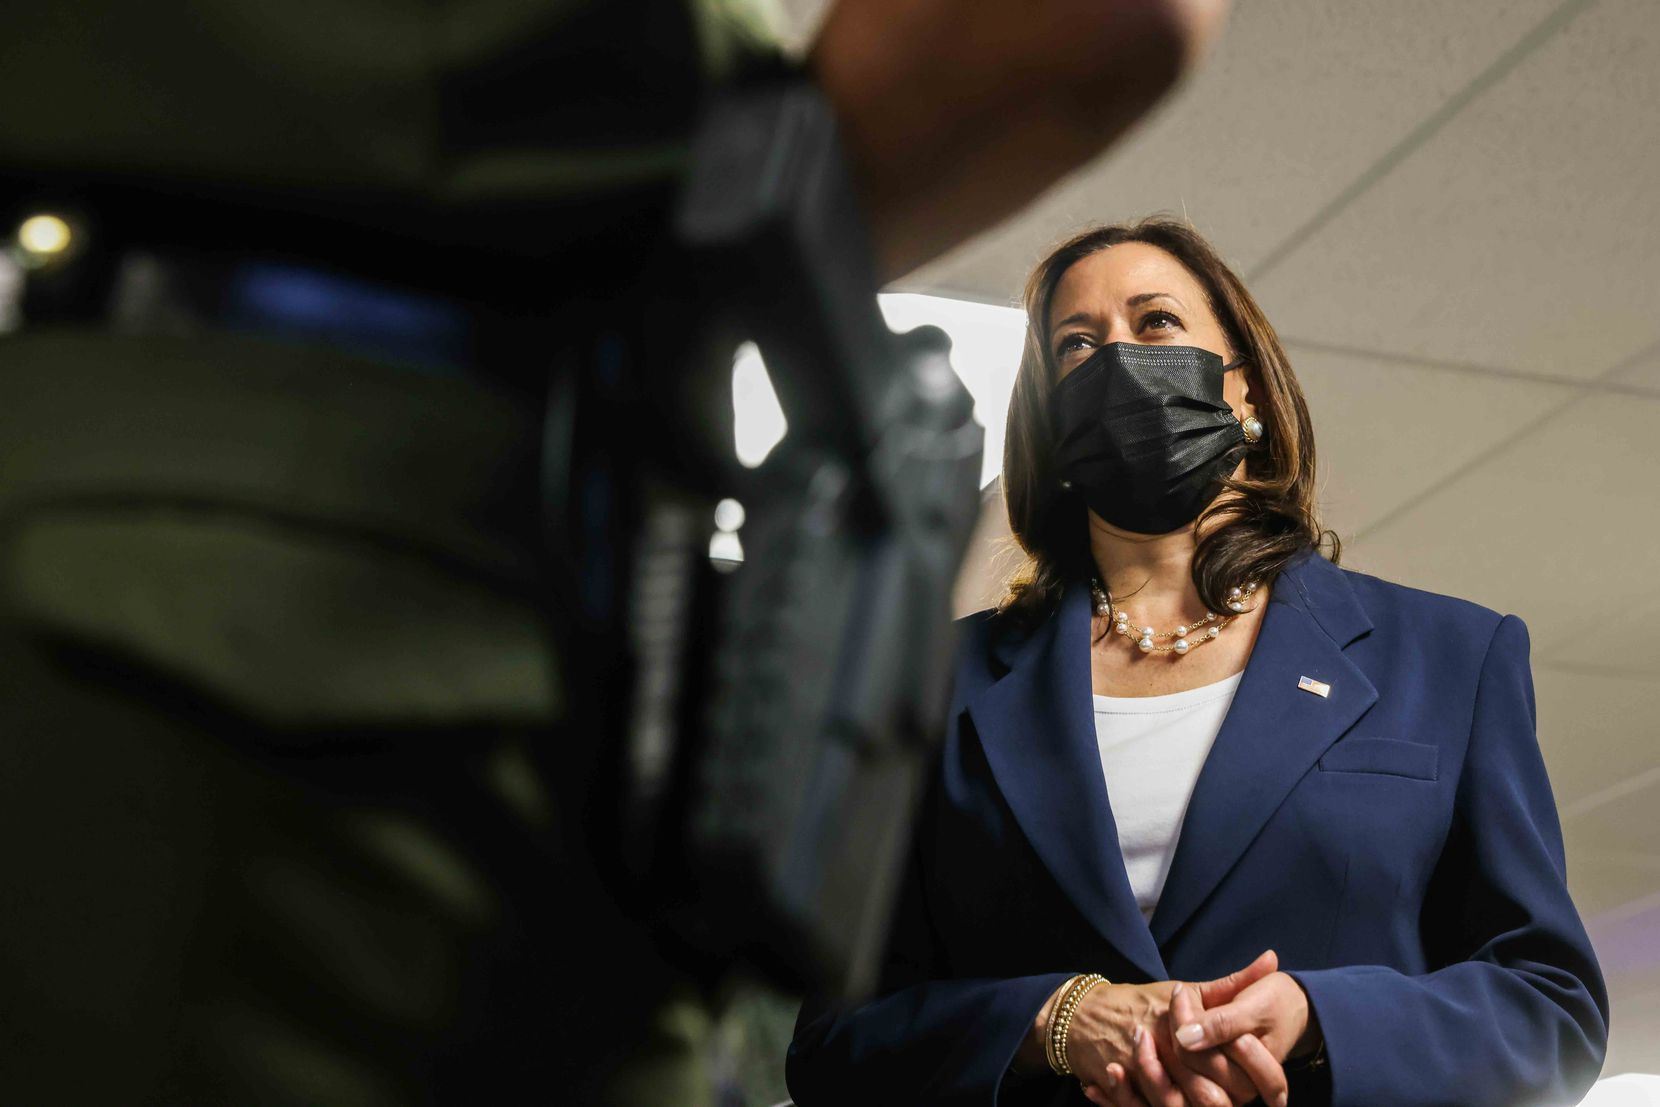 Vice President Kamala Harris visited U.S. Customs and Border Protection's El Paso central processing center on Friday.